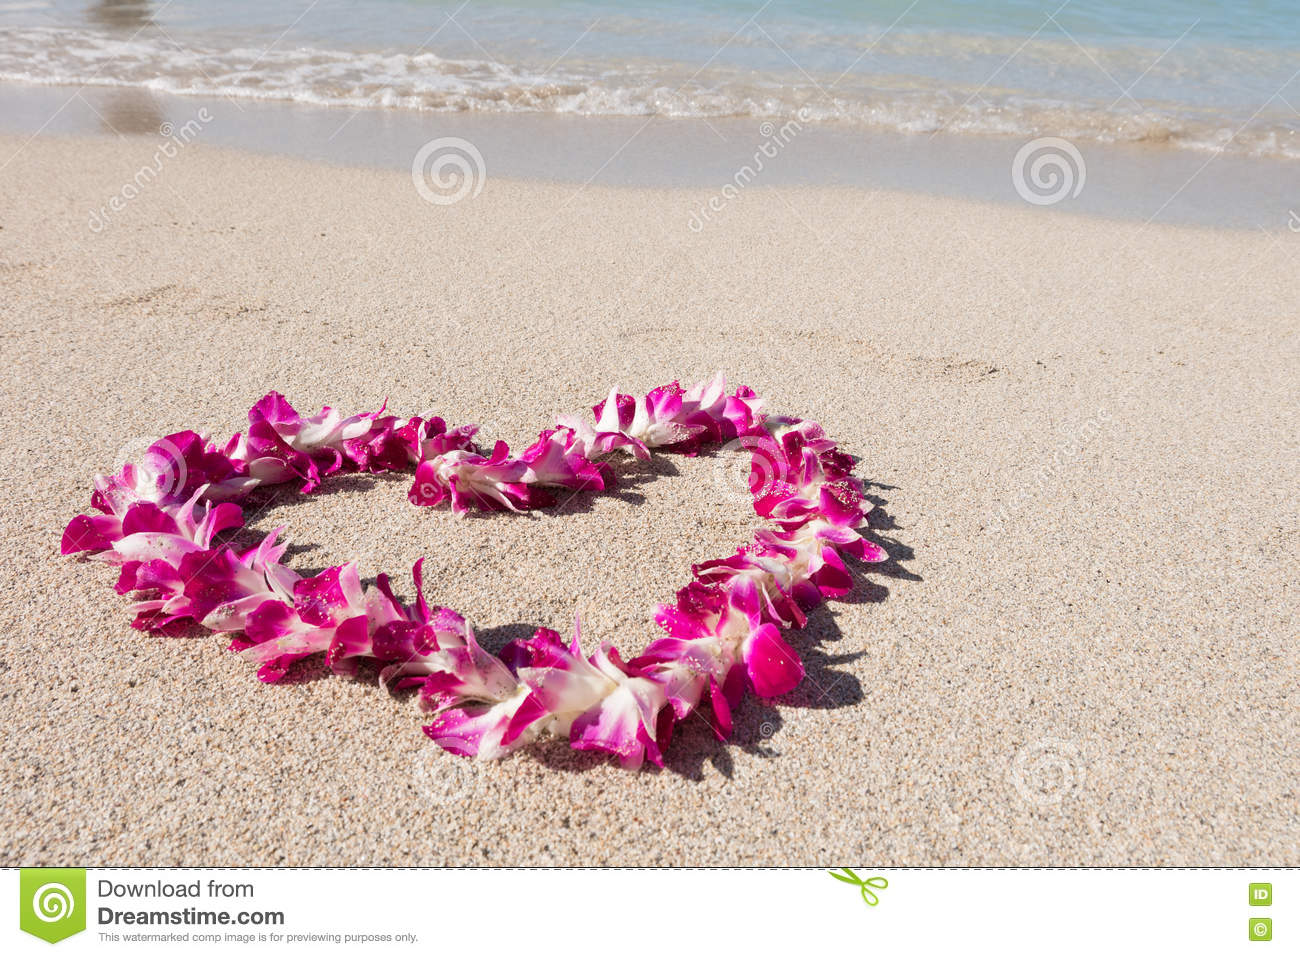 Heart shaped orchid flower garland white sea sand beach stock photo heart shaped orchid flower garland white sea sand beach izmirmasajfo